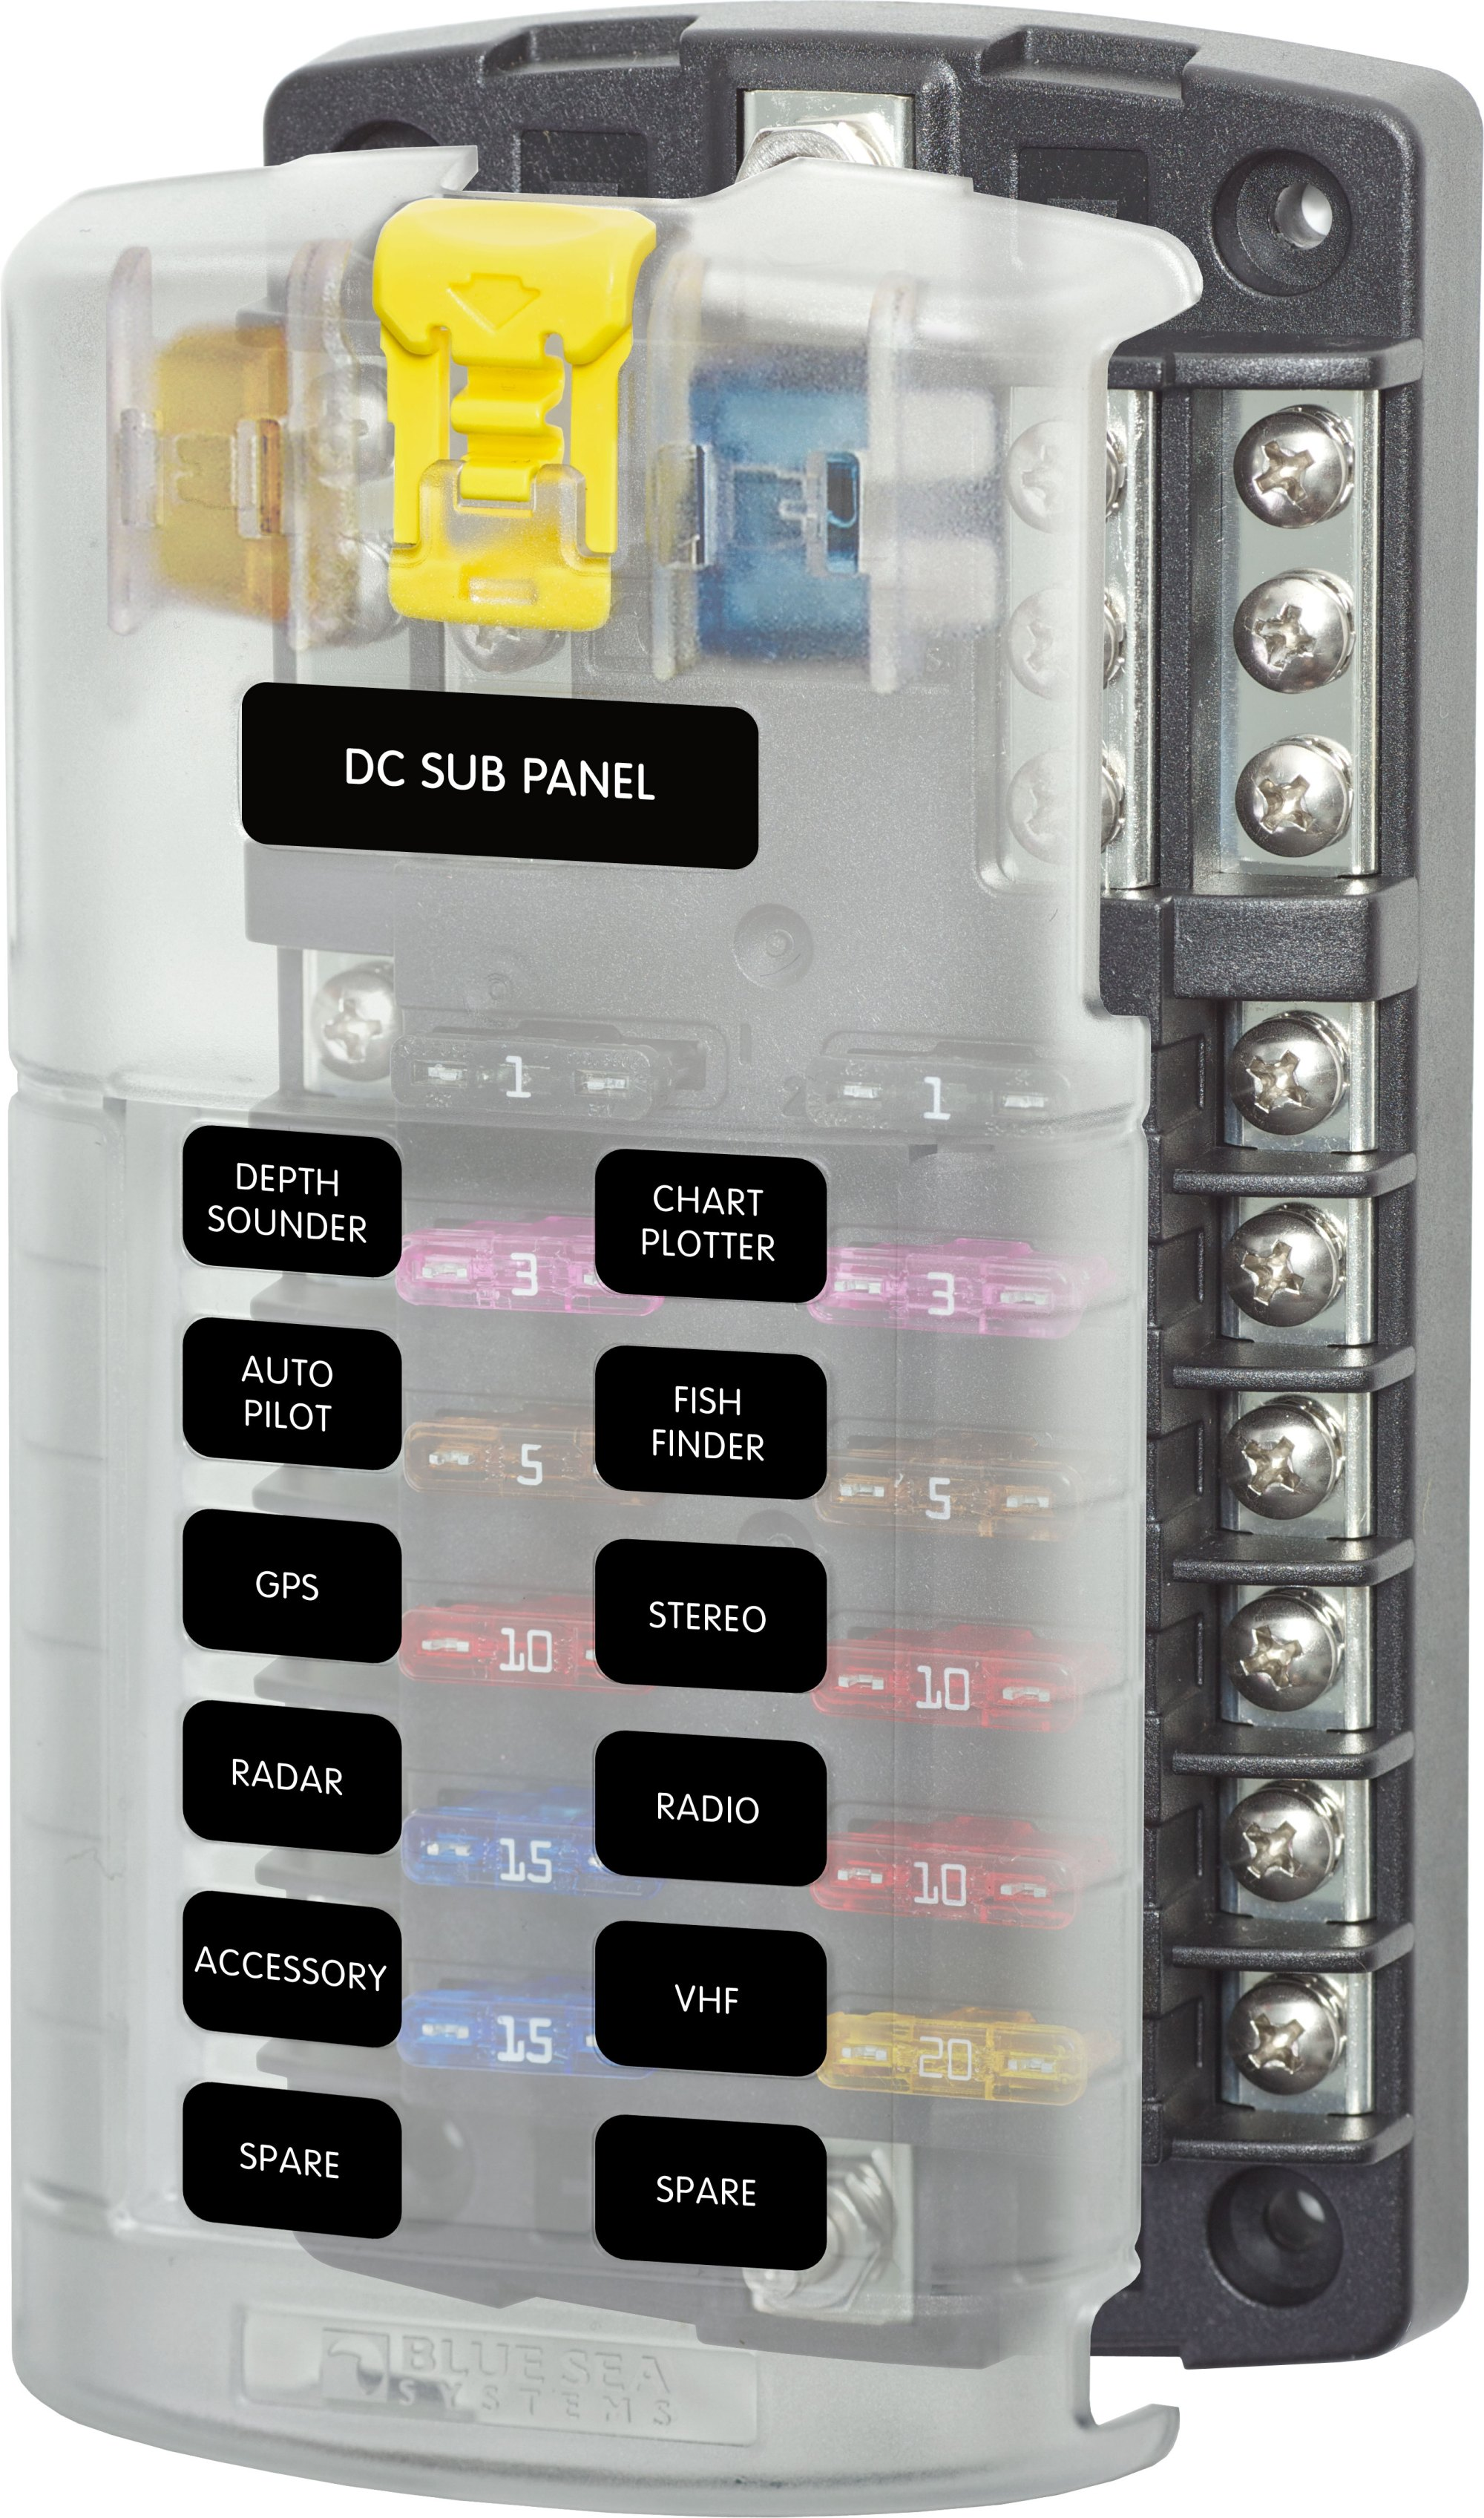 hight resolution of marine dc fuse box wiring diagram go marine dc fuse box